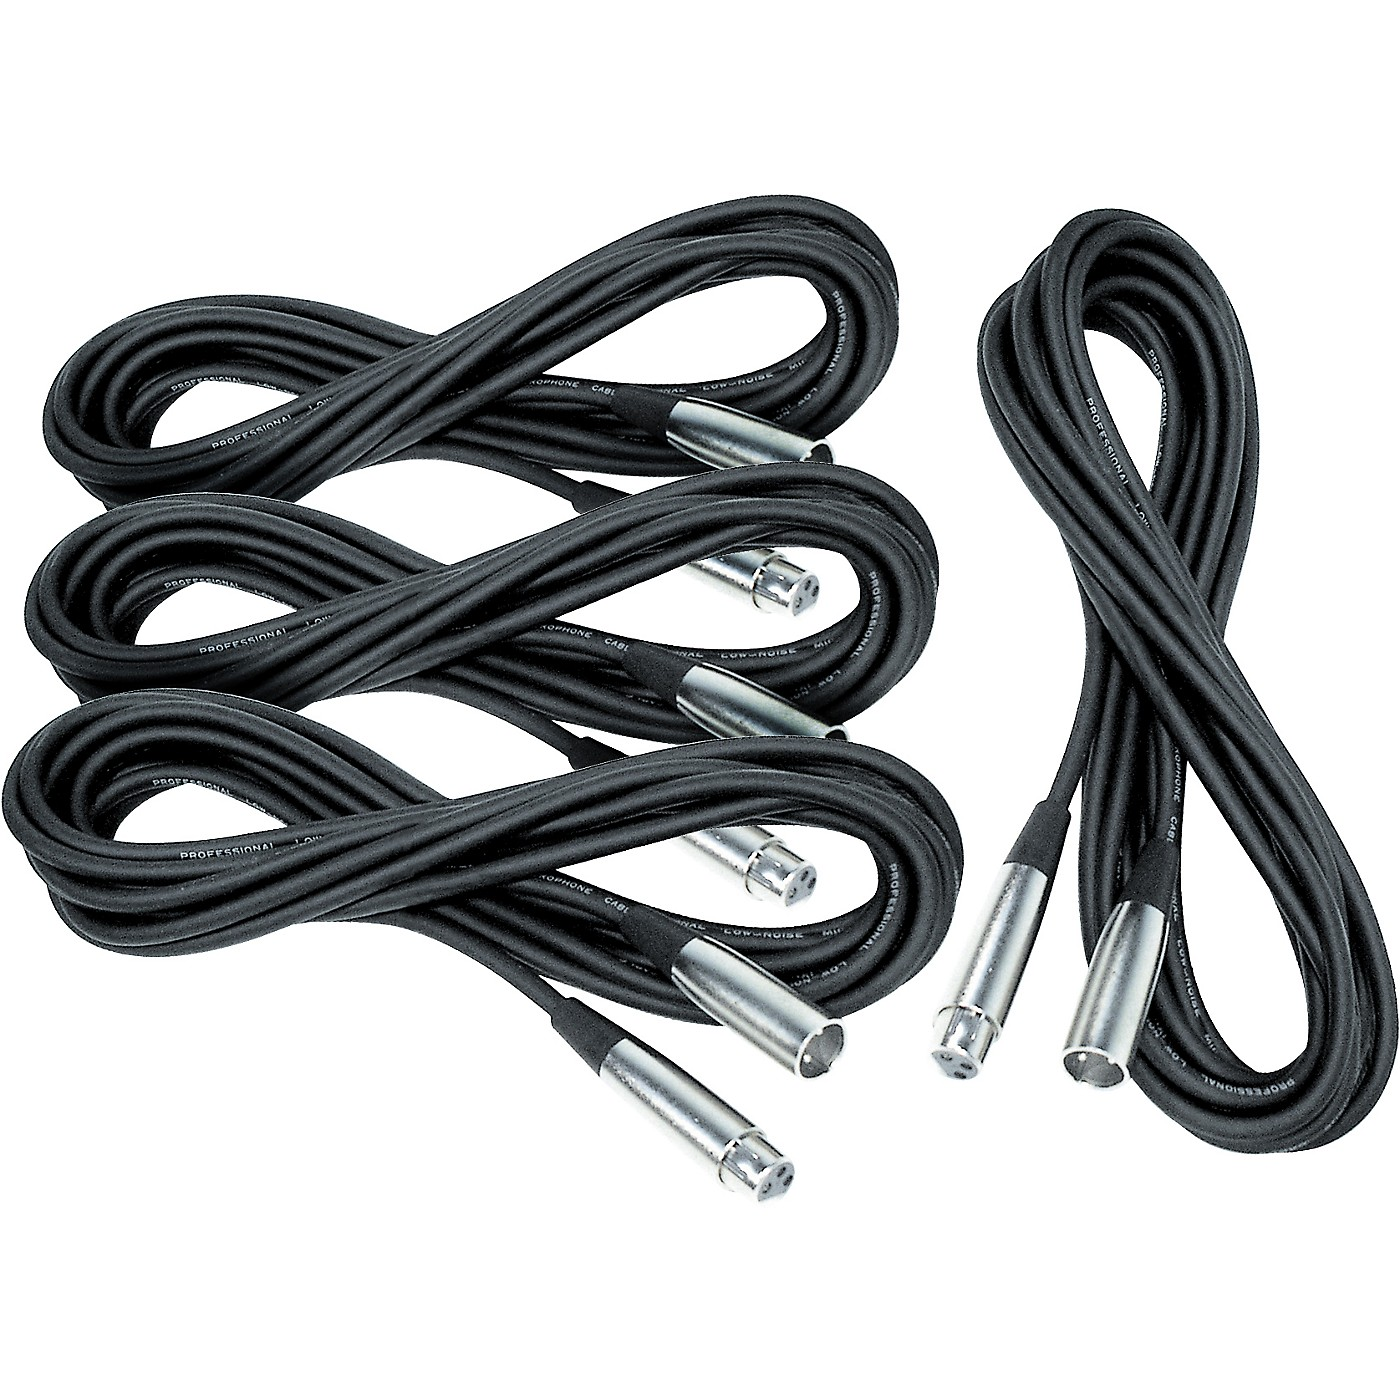 Musician's Gear Lo-Z Mic Cable 20' 4-Pack thumbnail